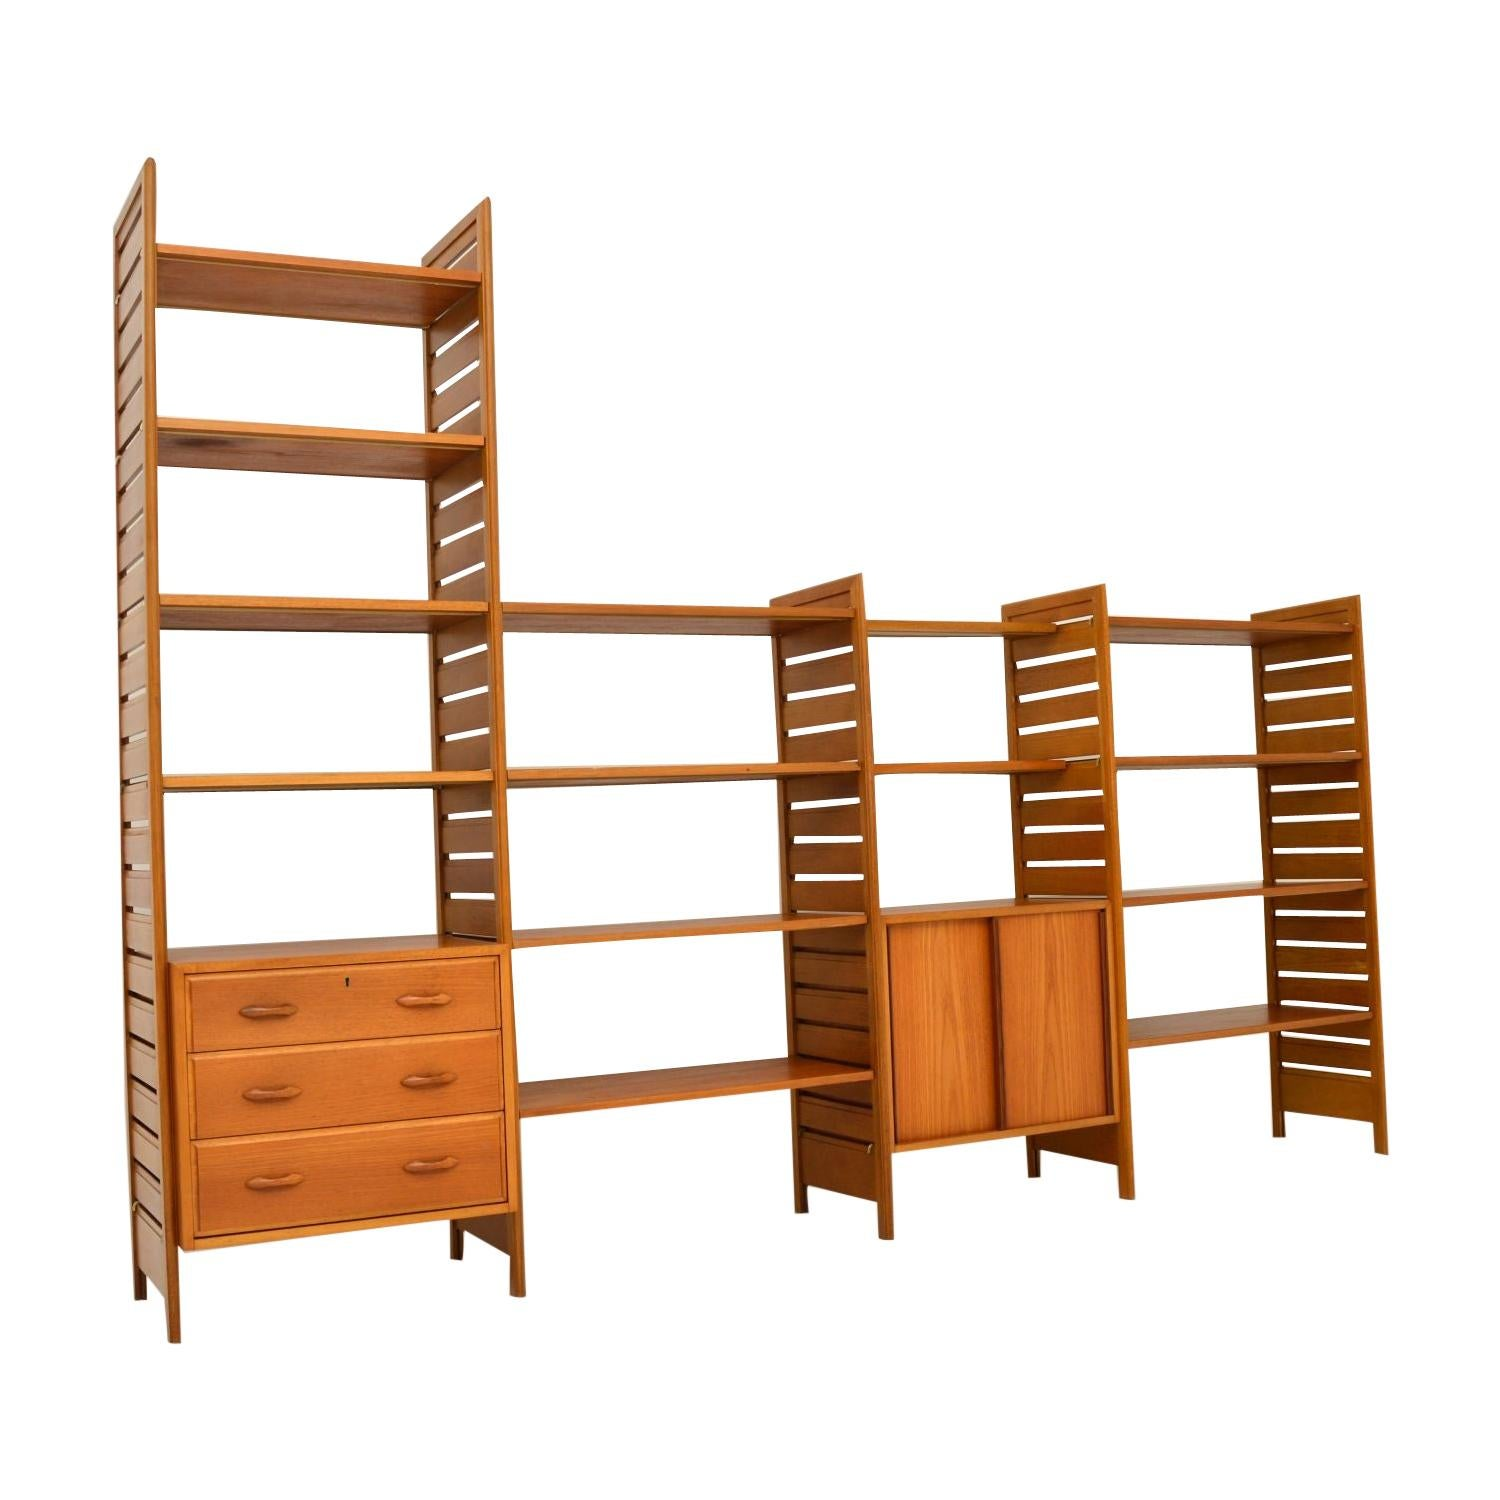 Staples Ladderax Vintage Bookcase / Cabinet / Room Divider in Teak